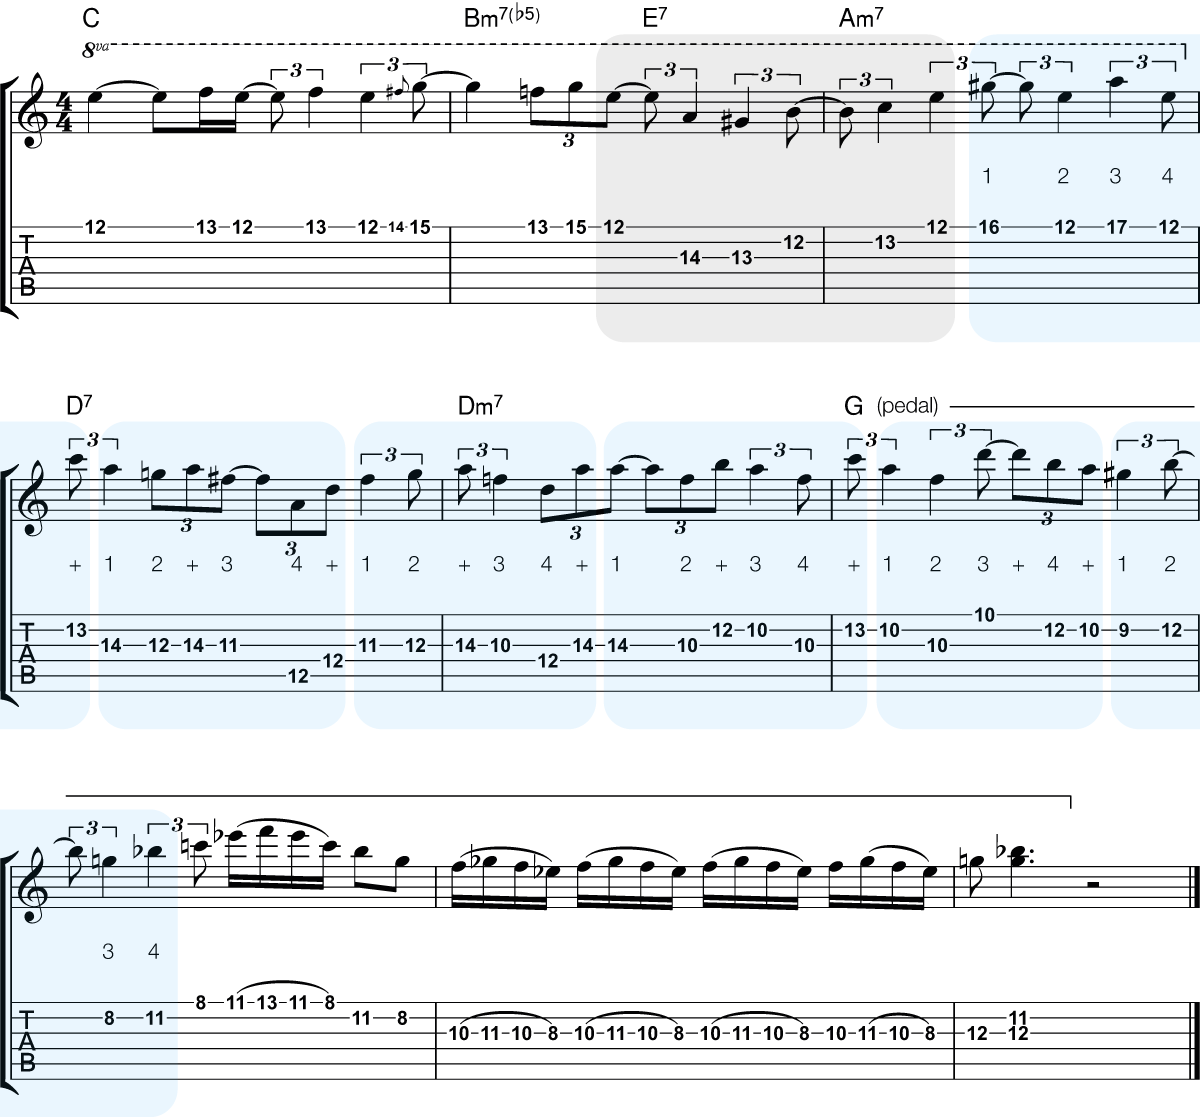 Gilad Hekselman - I Should Care (2.43) - Transcribed by Mark McKnight